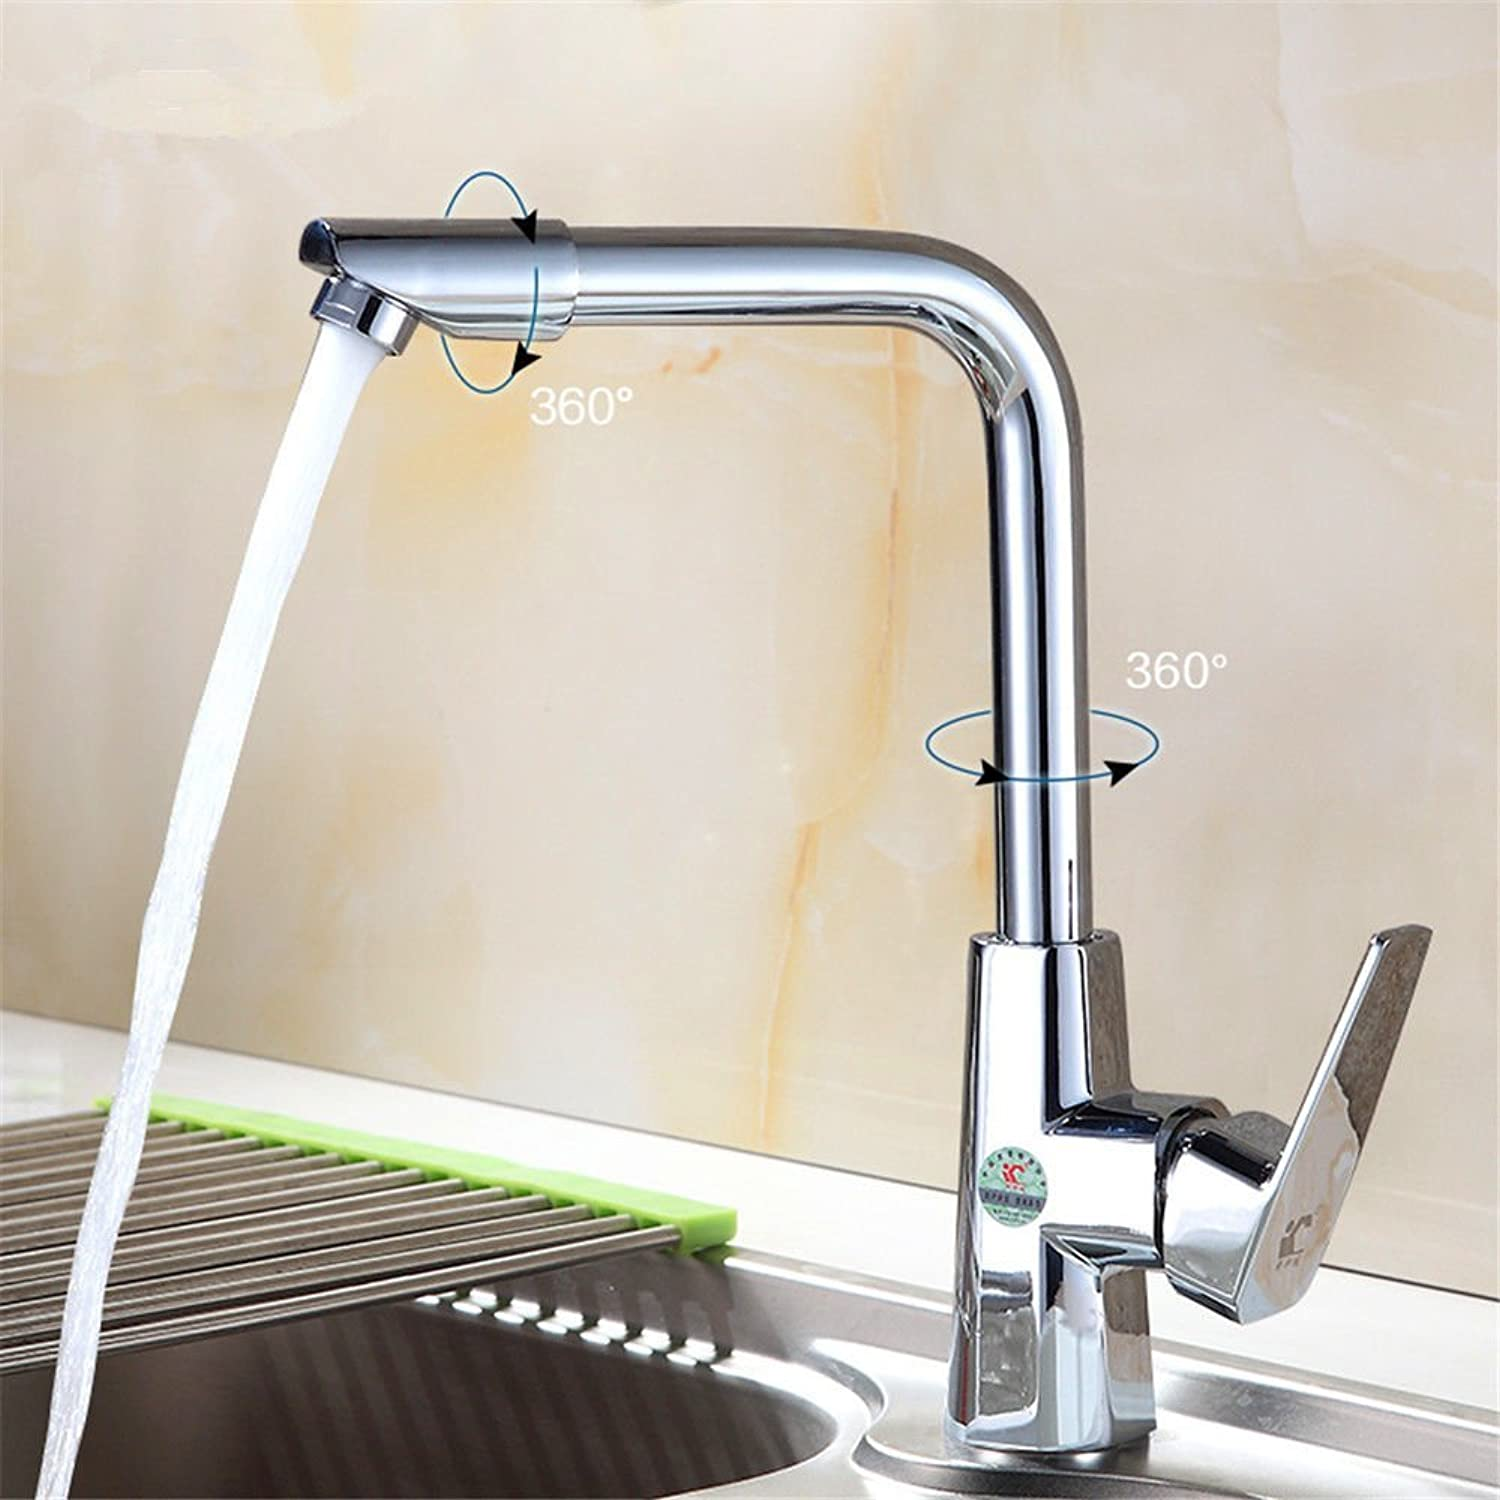 Oudan Basin Mixer Tap Bathroom Sink Faucet Kitchen faucet hot and cold dishes and wash basin sink basin single hole full copper Water mixing valve cooking 000 to redate